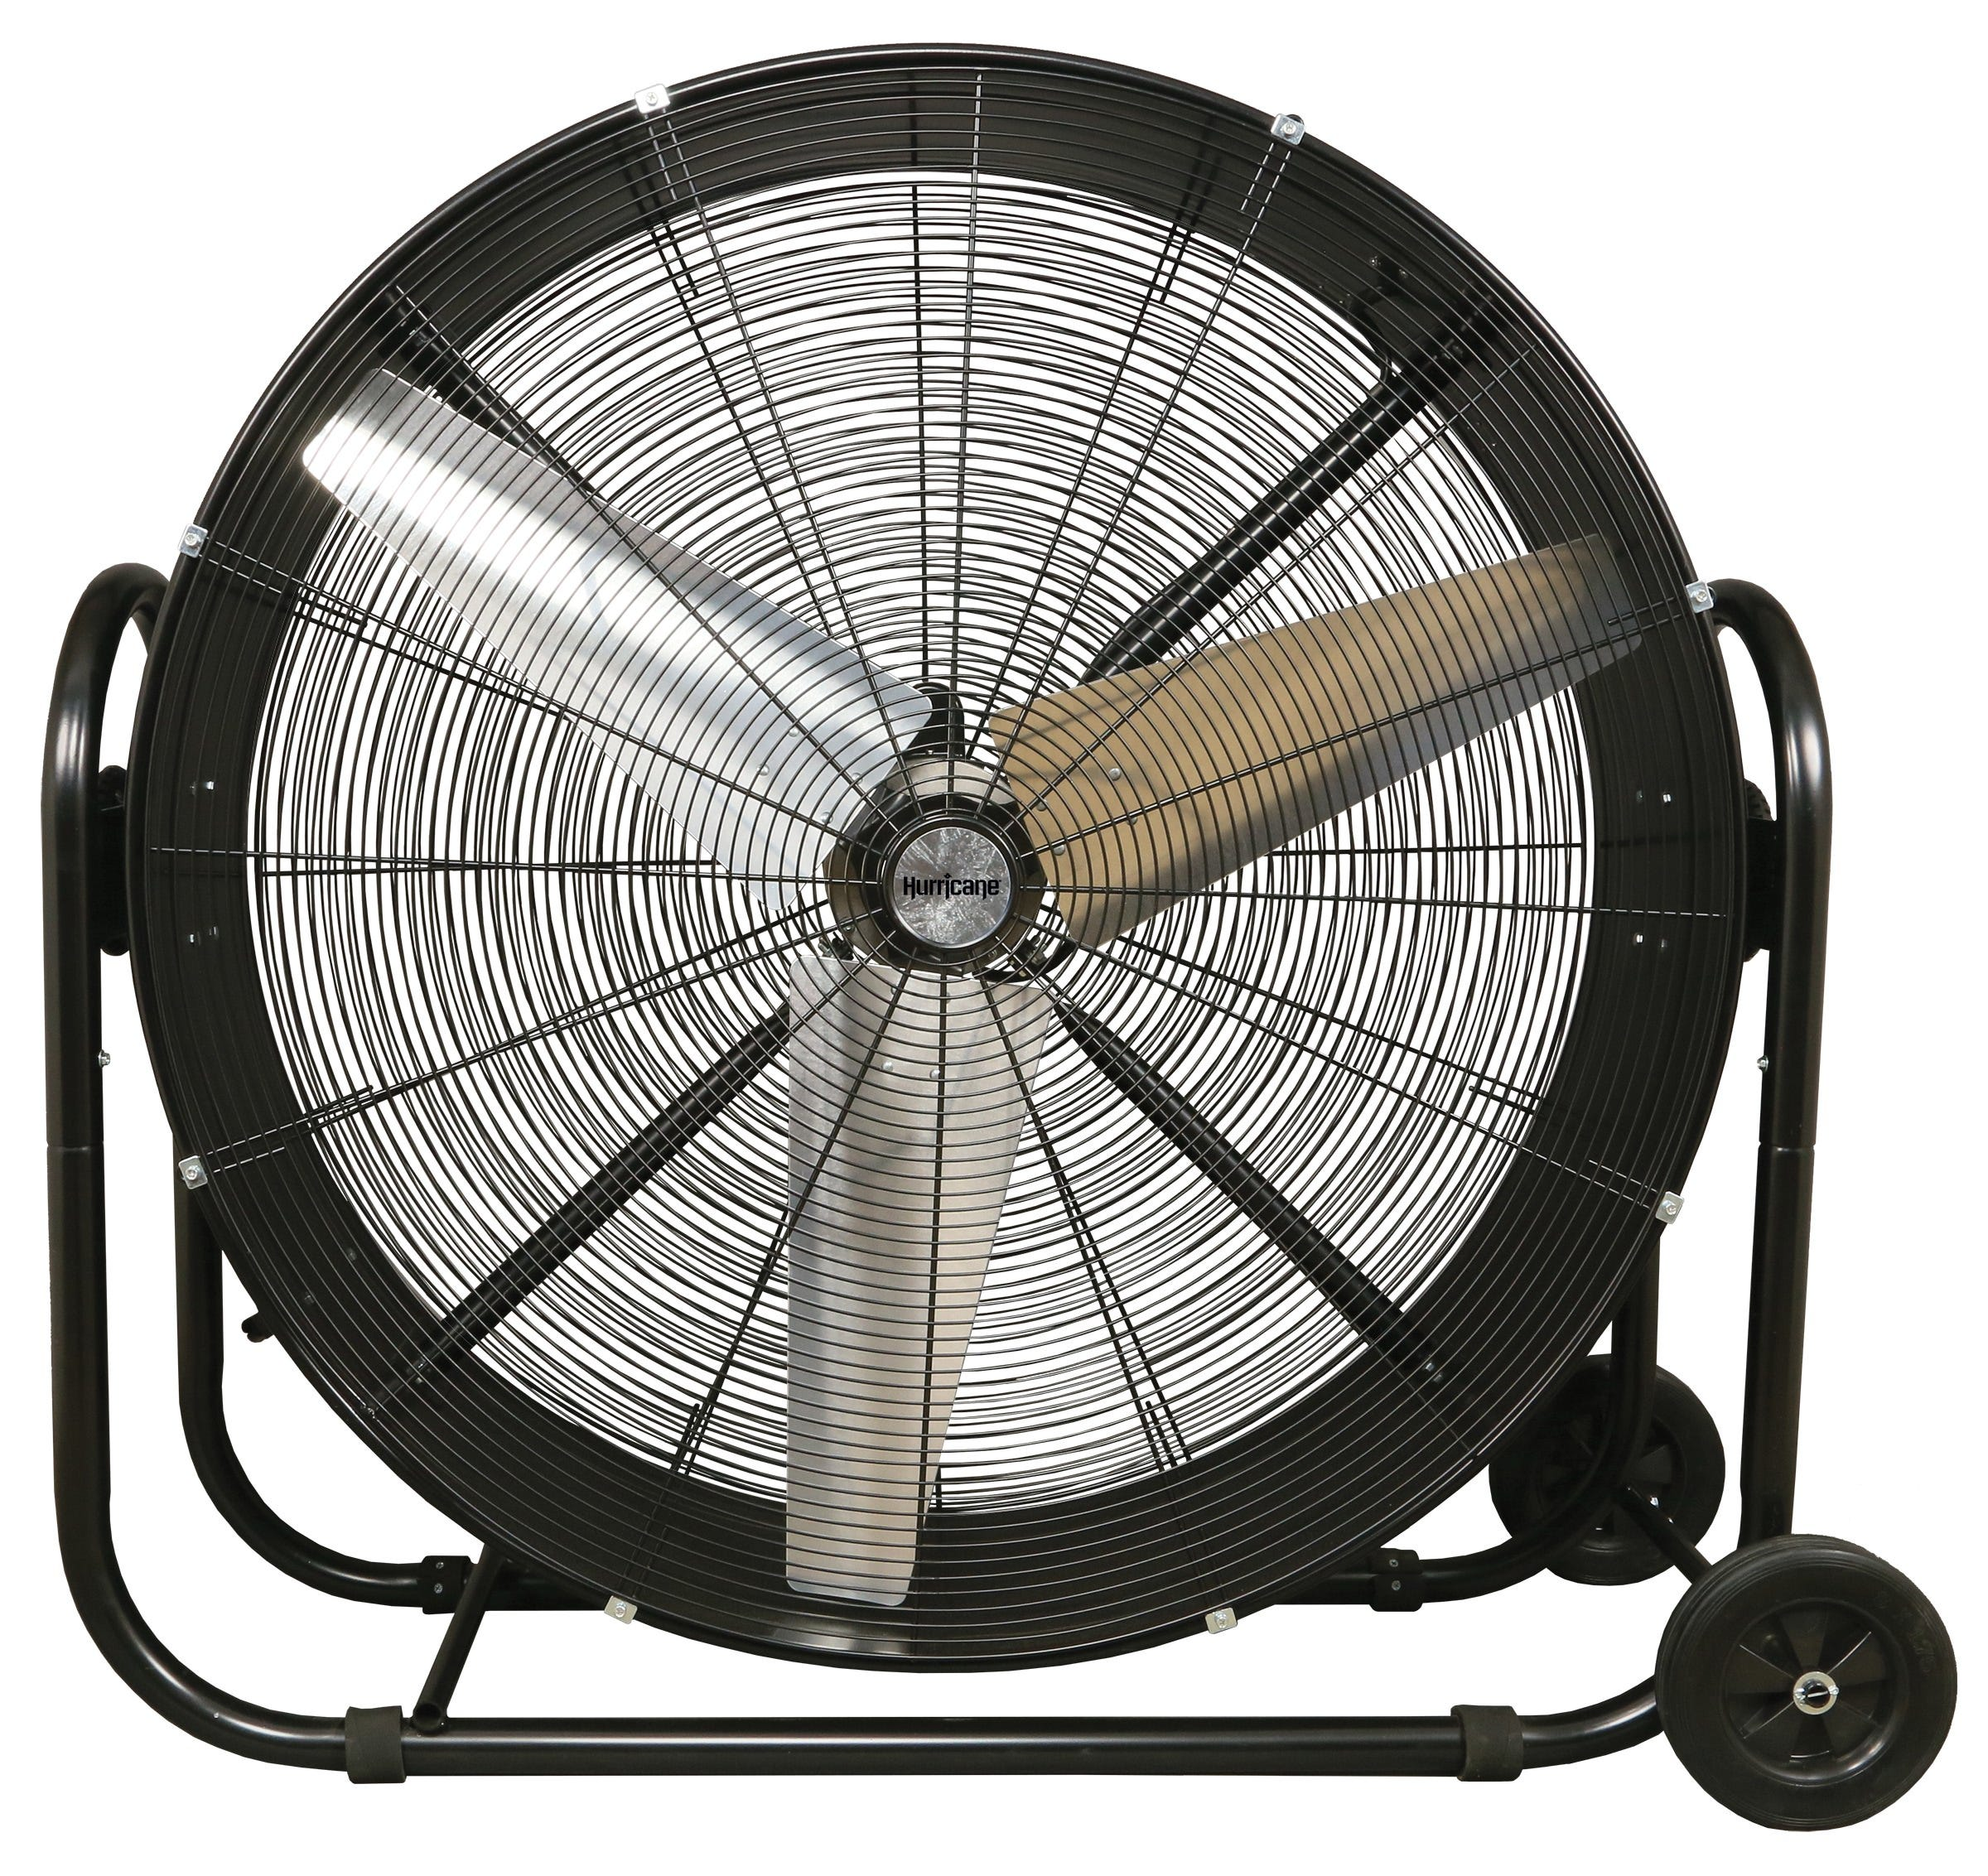 Heavy Duty Fan >> Hurricane Pro Heavy Duty Adjustable Tilt Drum Fan 42 In Direct